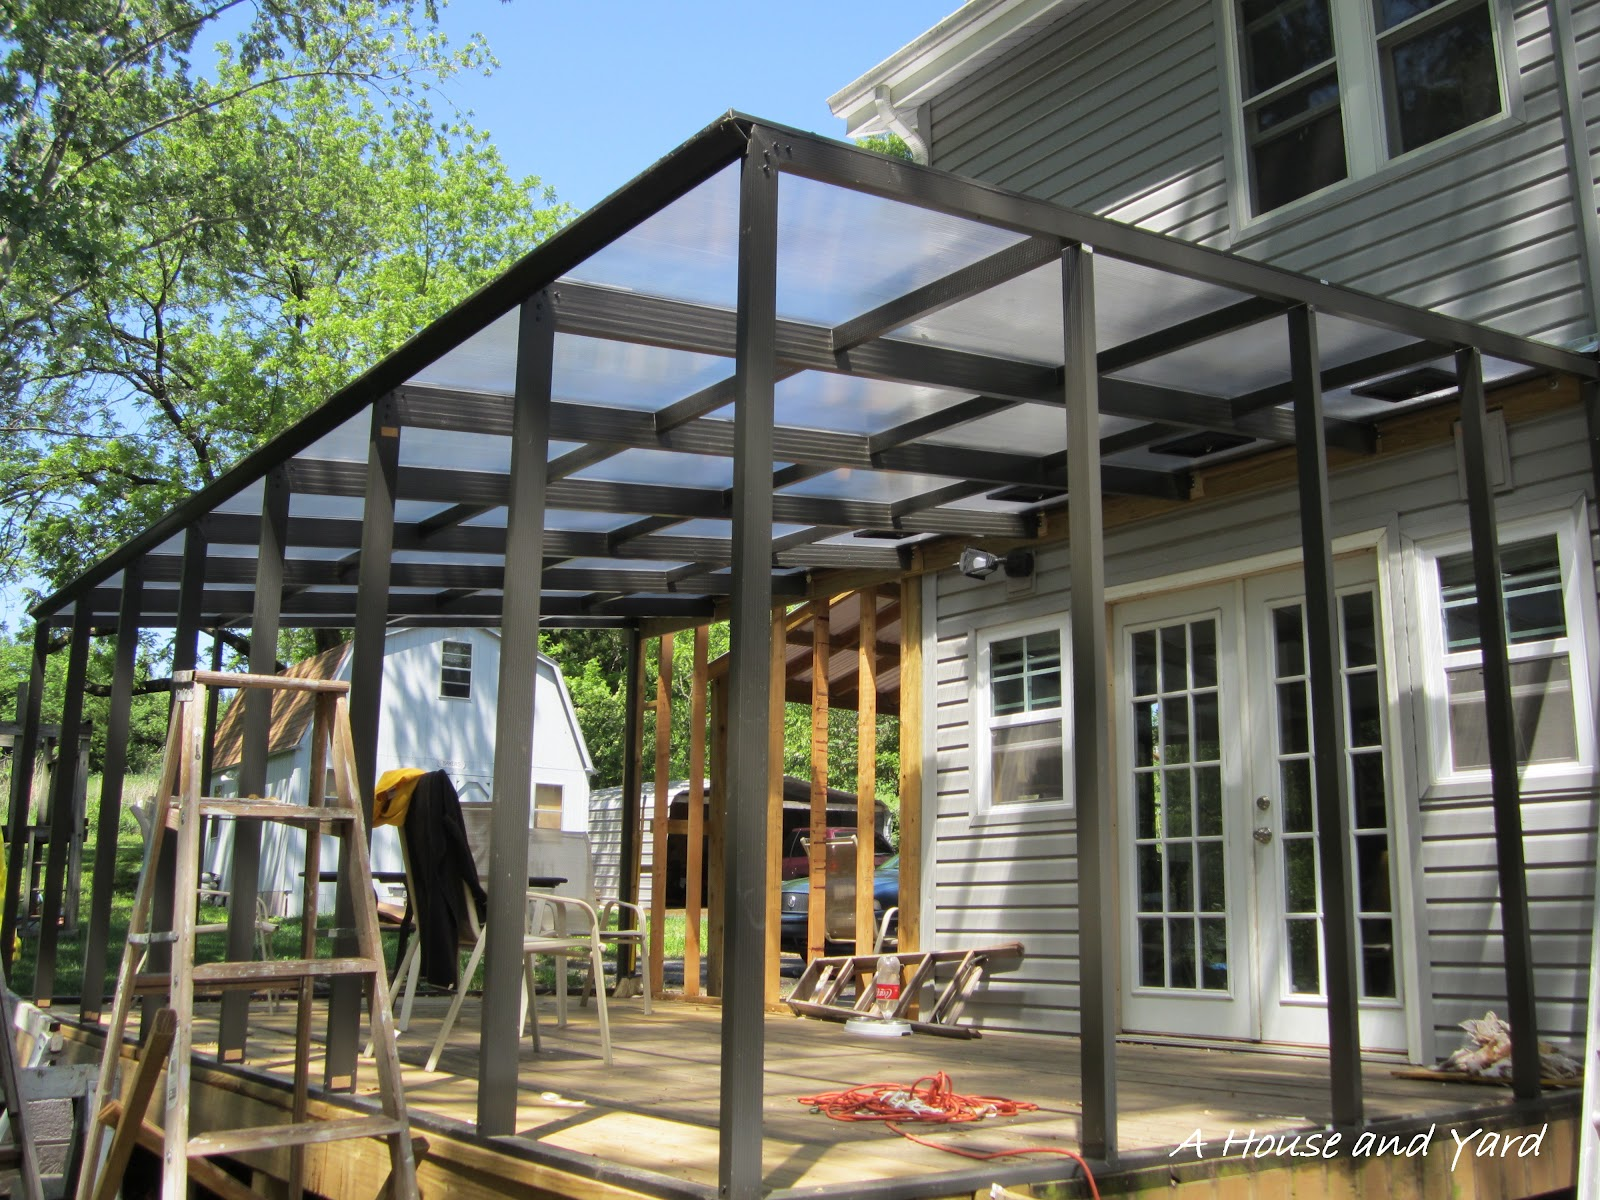 a house and yard sunroom project